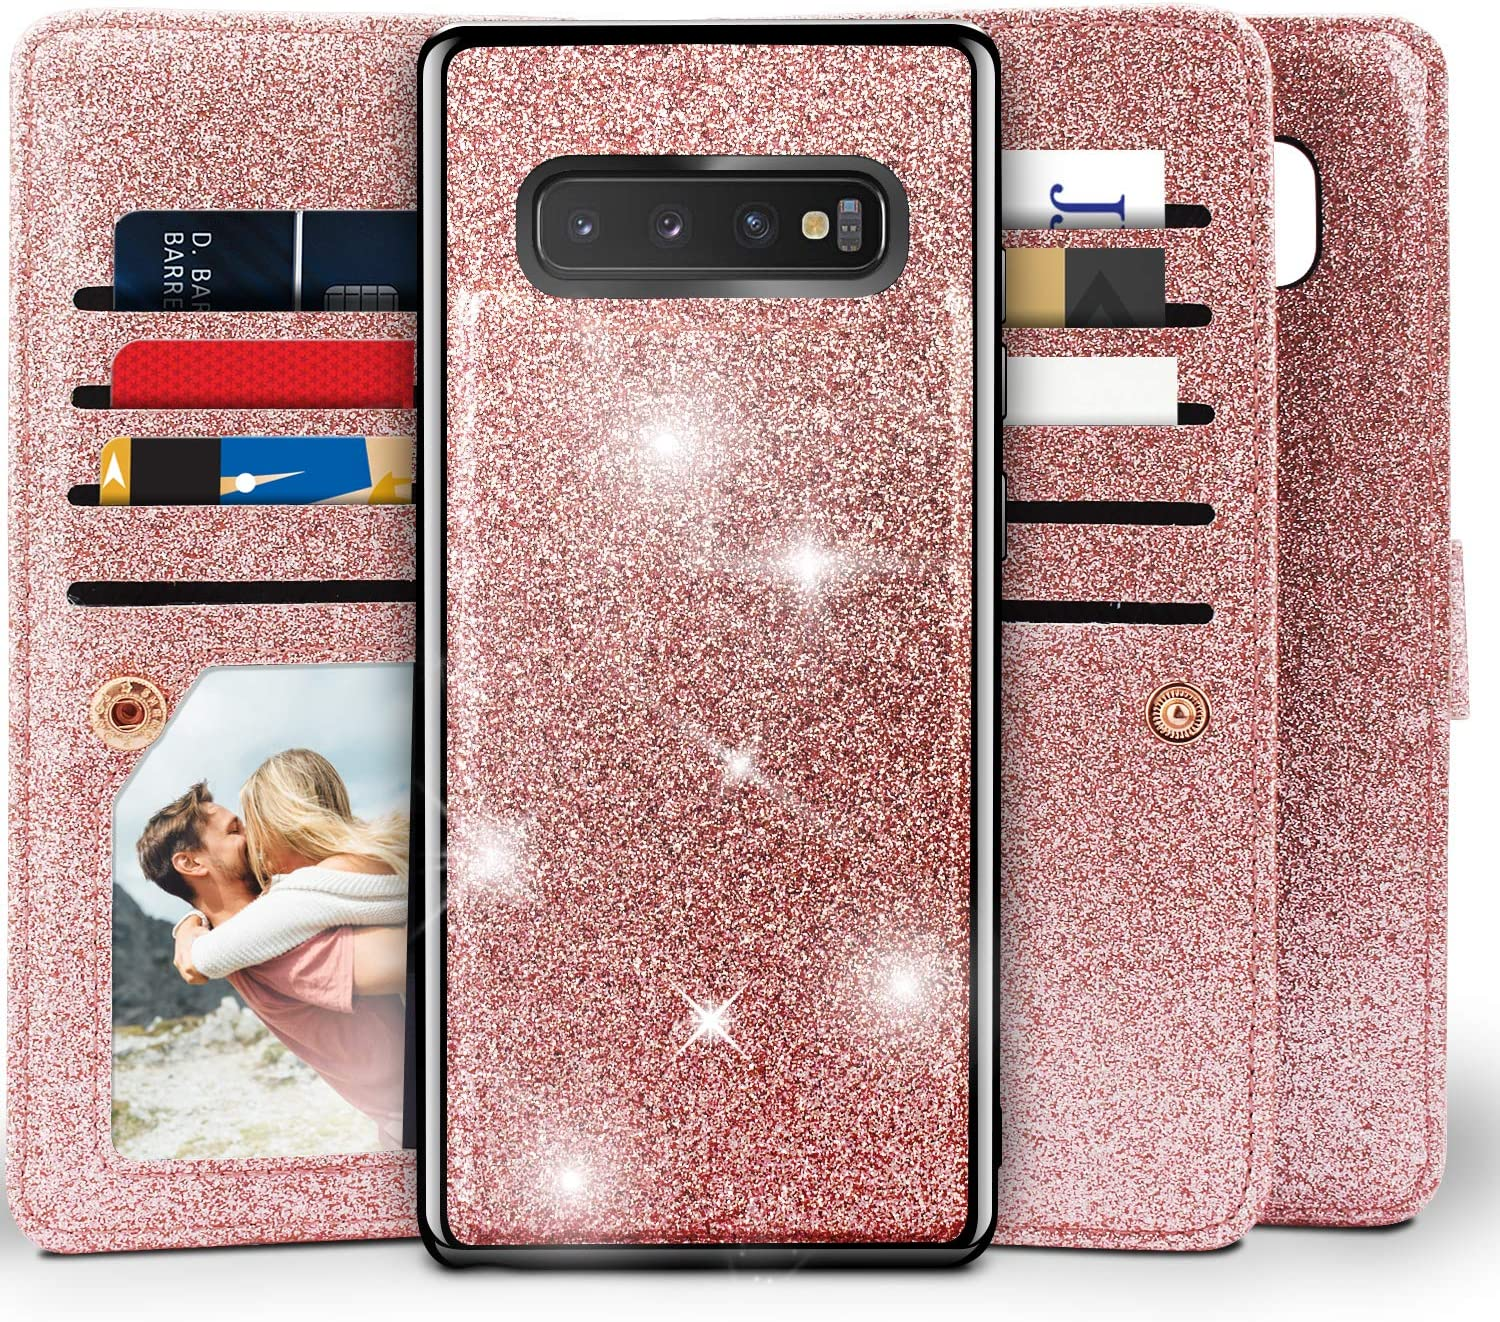 Miss Arts Galaxy S10 Plus Wallet Case, Detachable Magnetic Slim Case with Car Mount Holder, 9 Card/Cash Slots, Magnet Clip, Wrist Strap, PU Leather Cover for Samsung Galaxy S10 Plus -Rose Gold